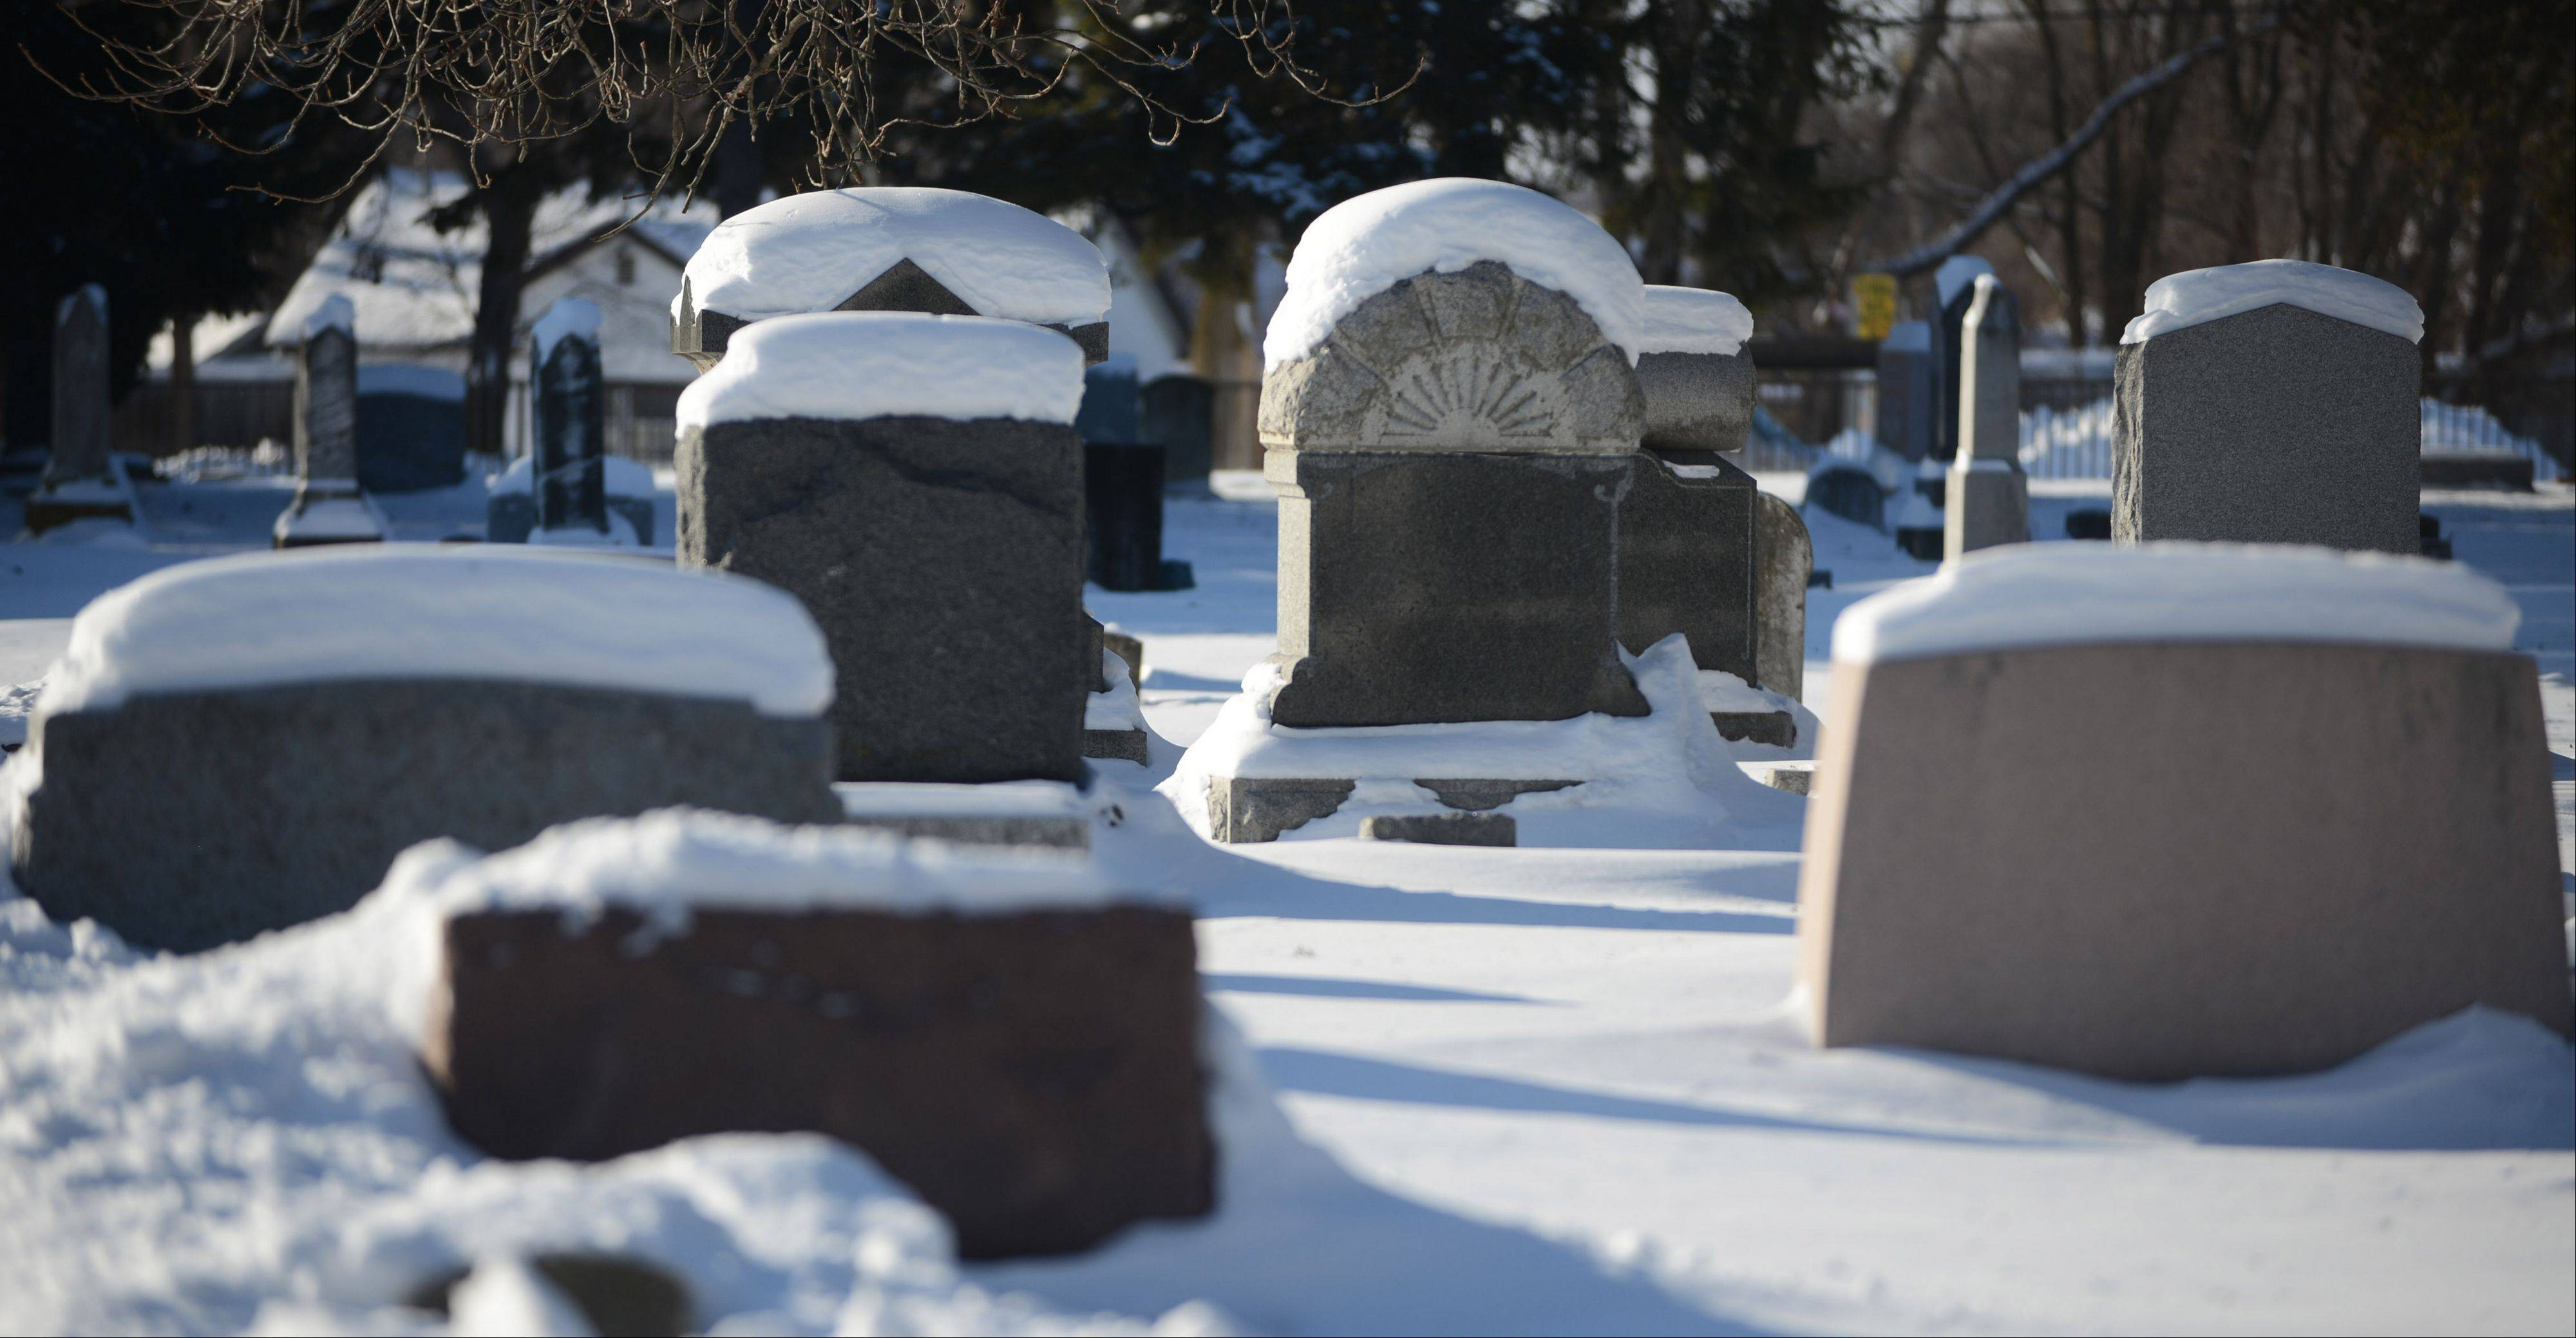 Brutally cold weather can complicate things, even for the dead